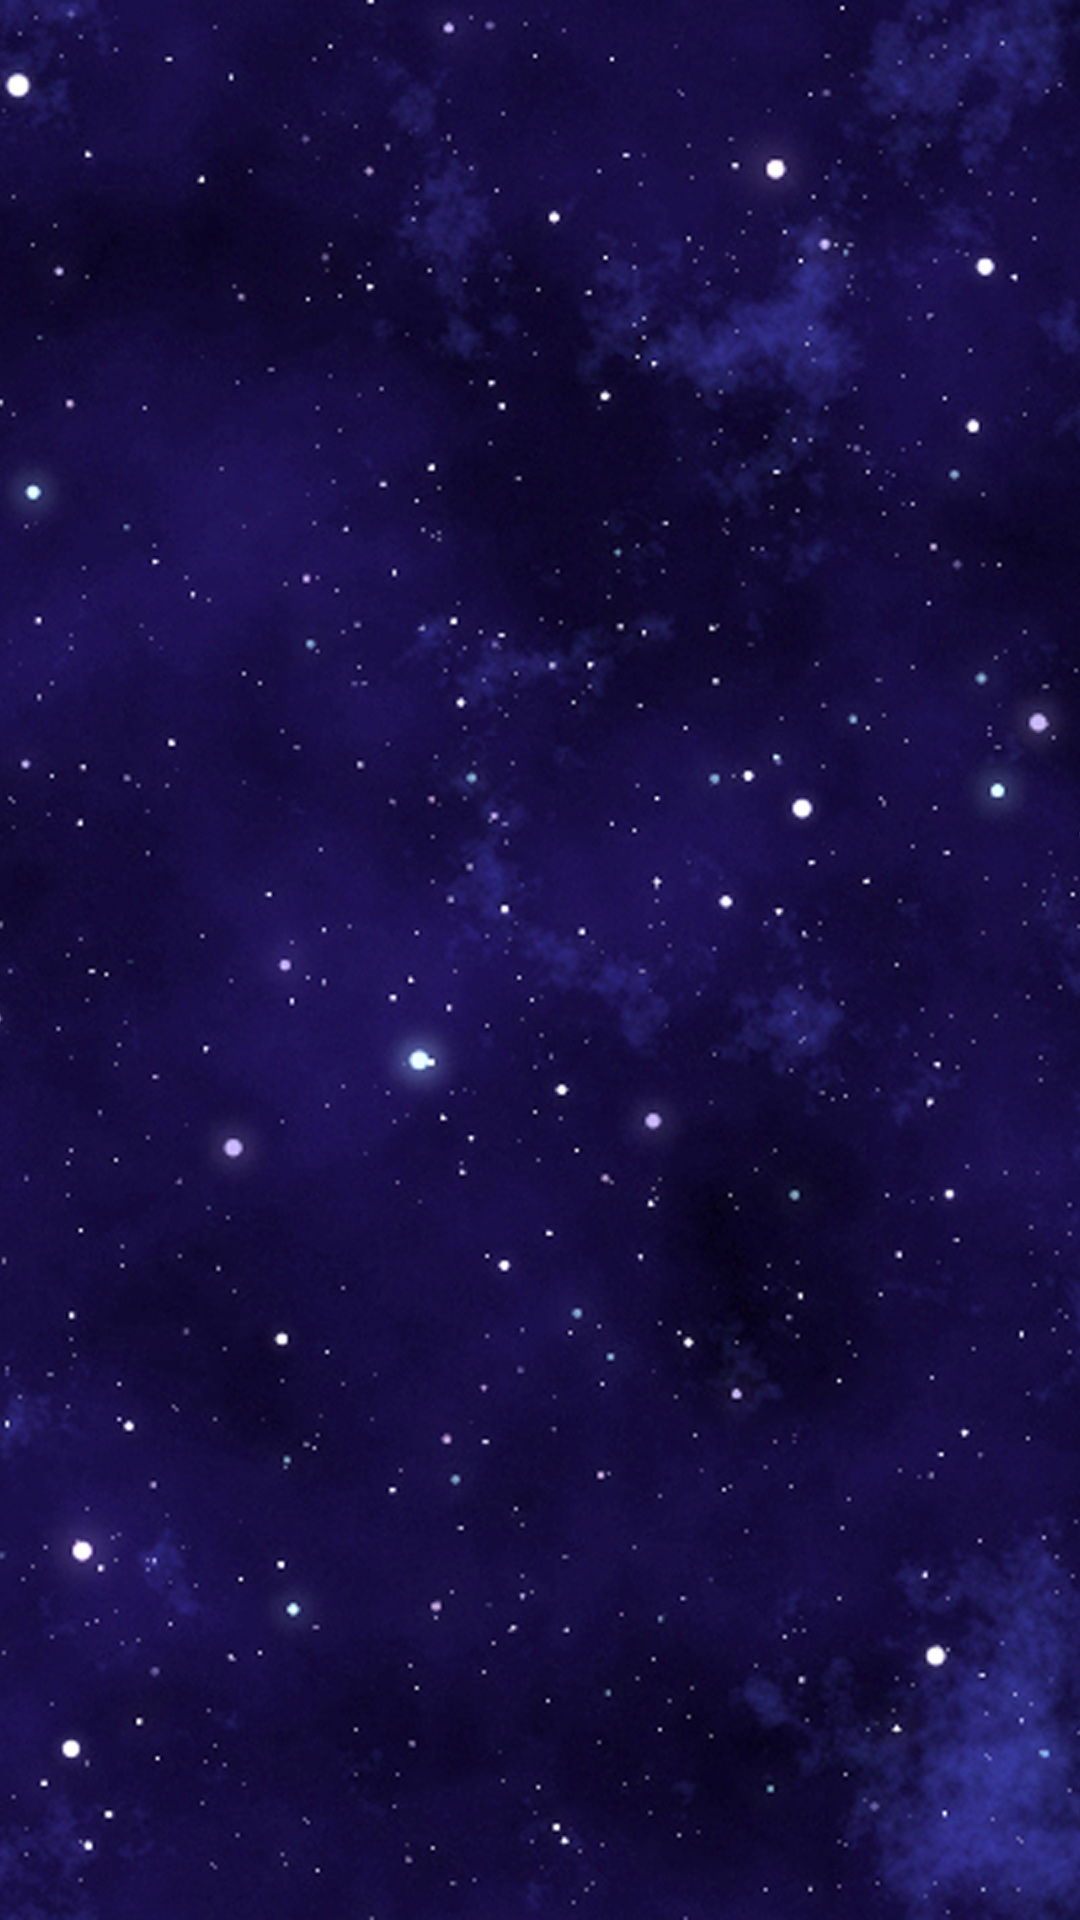 Deep Space Wallpapers   HD Wallpapers Lovely 1080x1920